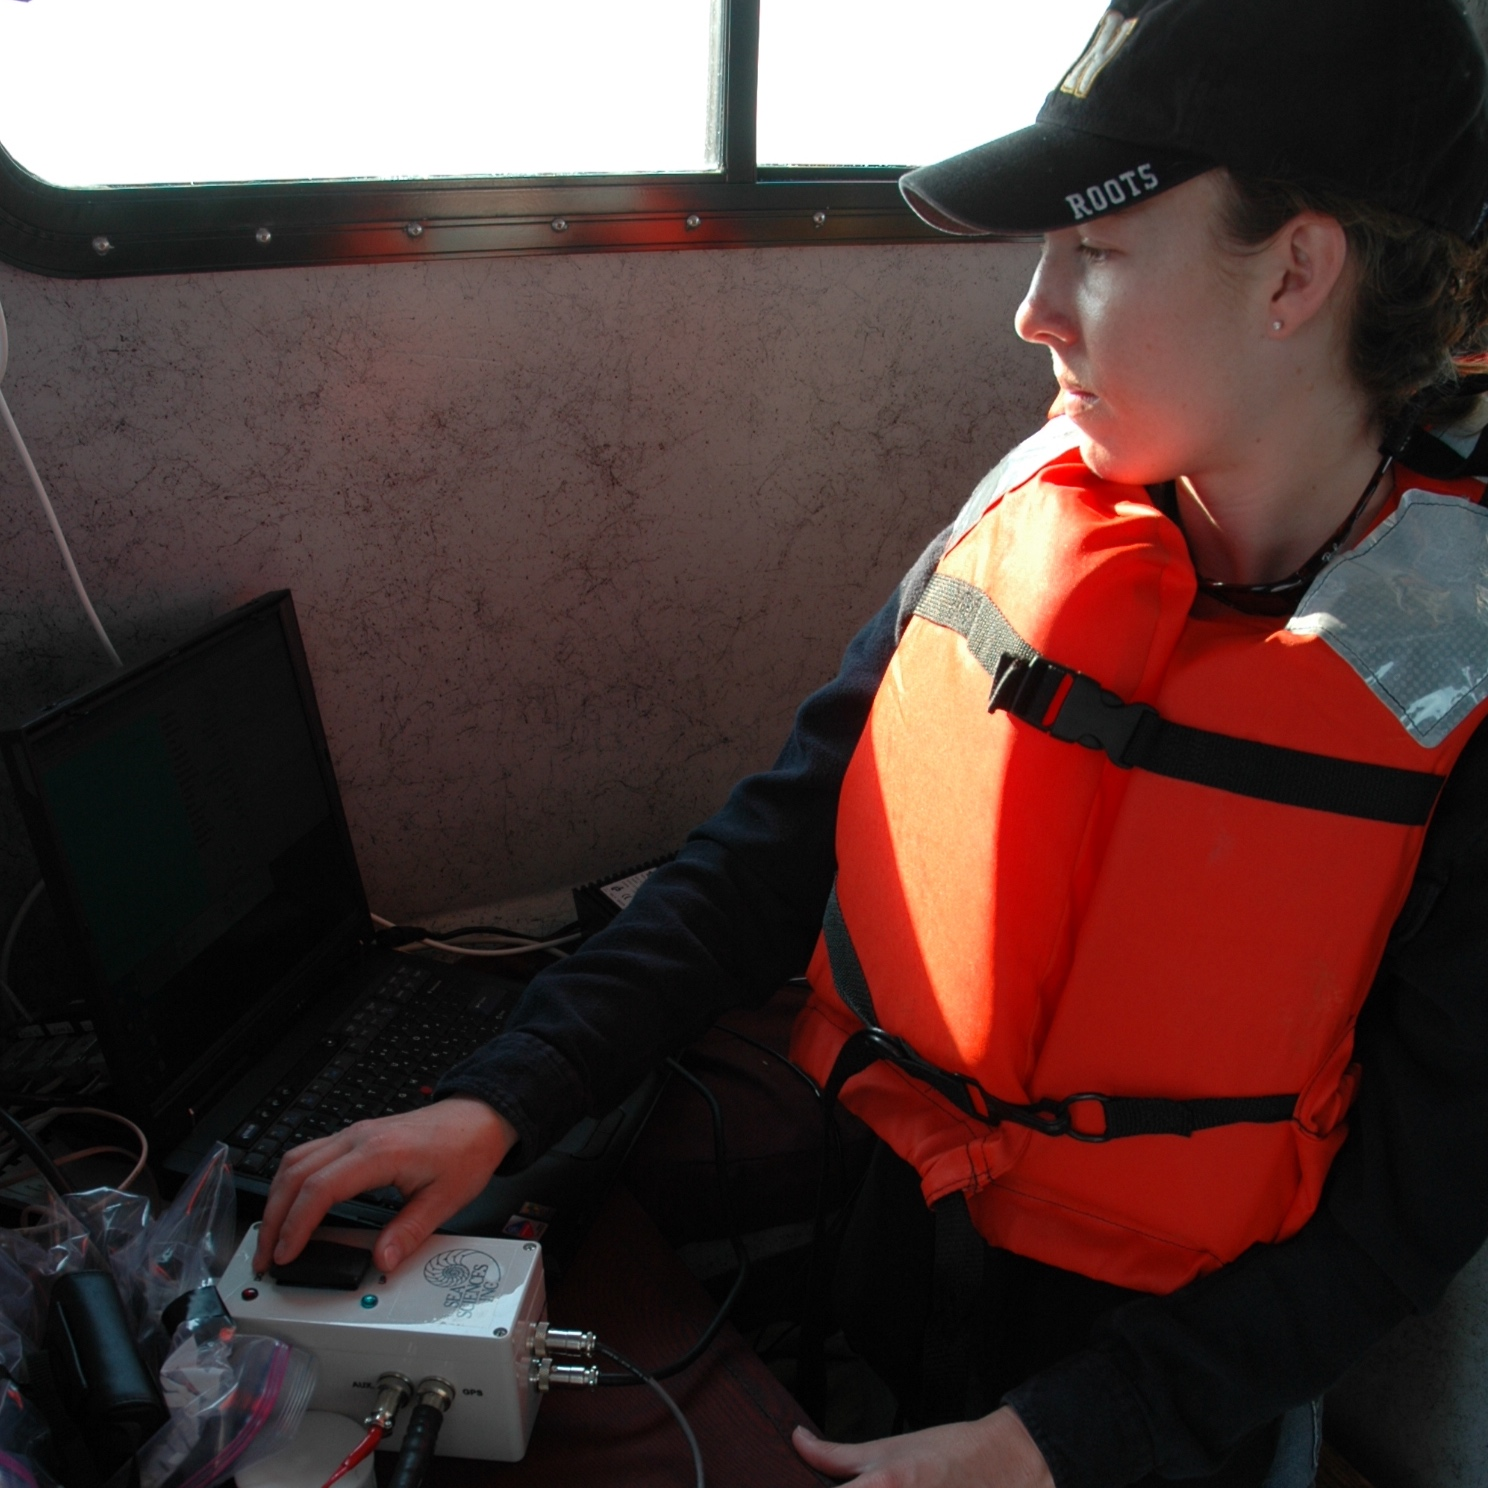 Olivia Cheriton - Ph.D. in Ocean SciencesGraduated: 2008, University of CaliforniaDissertation: Physical Processes Influencing the Formation and Persistence of Thin Plankton Layers in the Coastal Ocean.At Present: Oceanographer. USGS. Santa Cruz, California